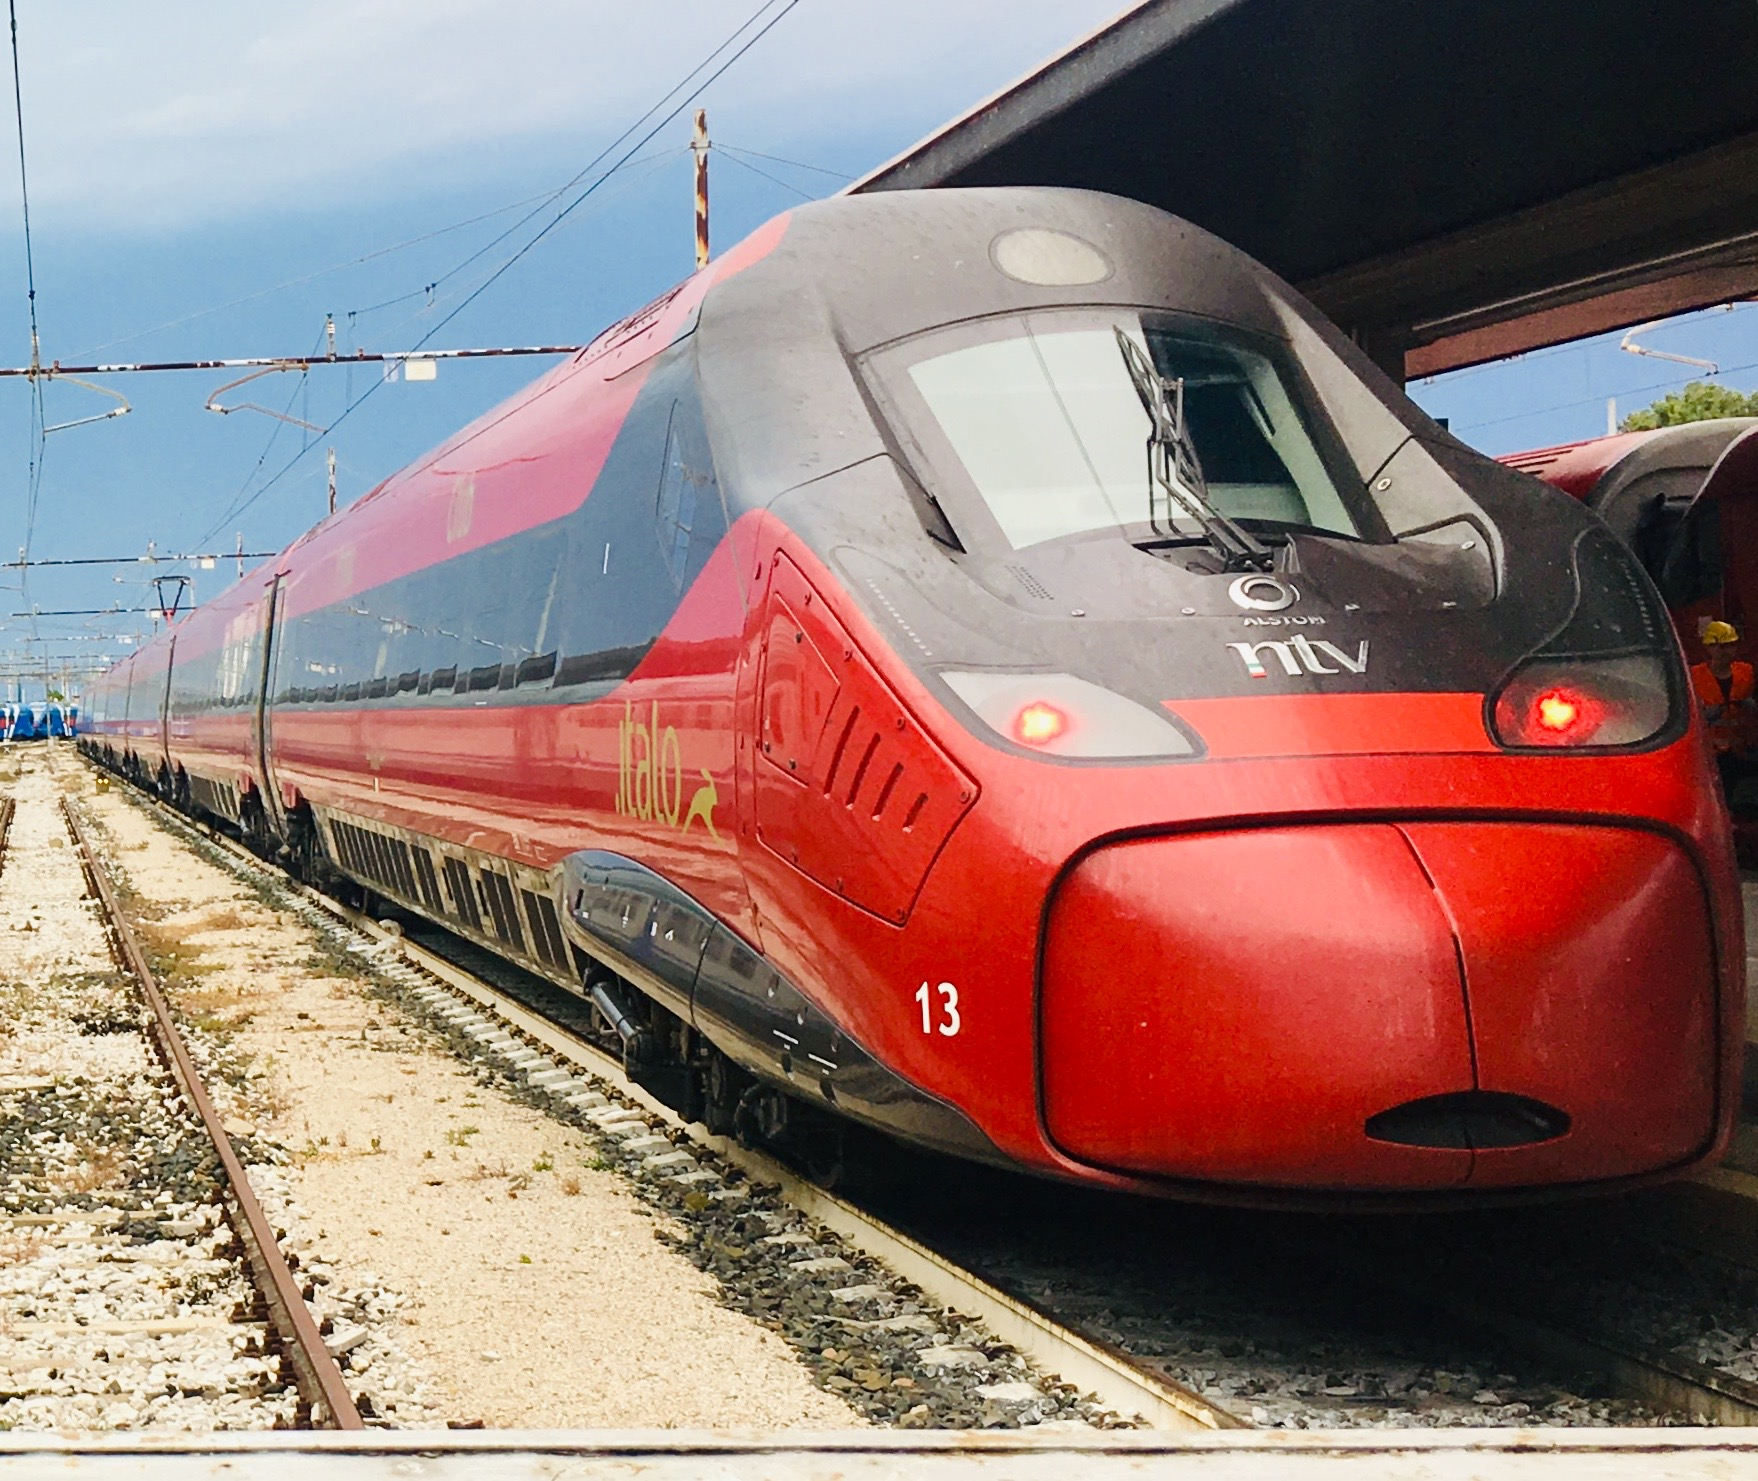 High-speed rail in Italy - Wikipedia